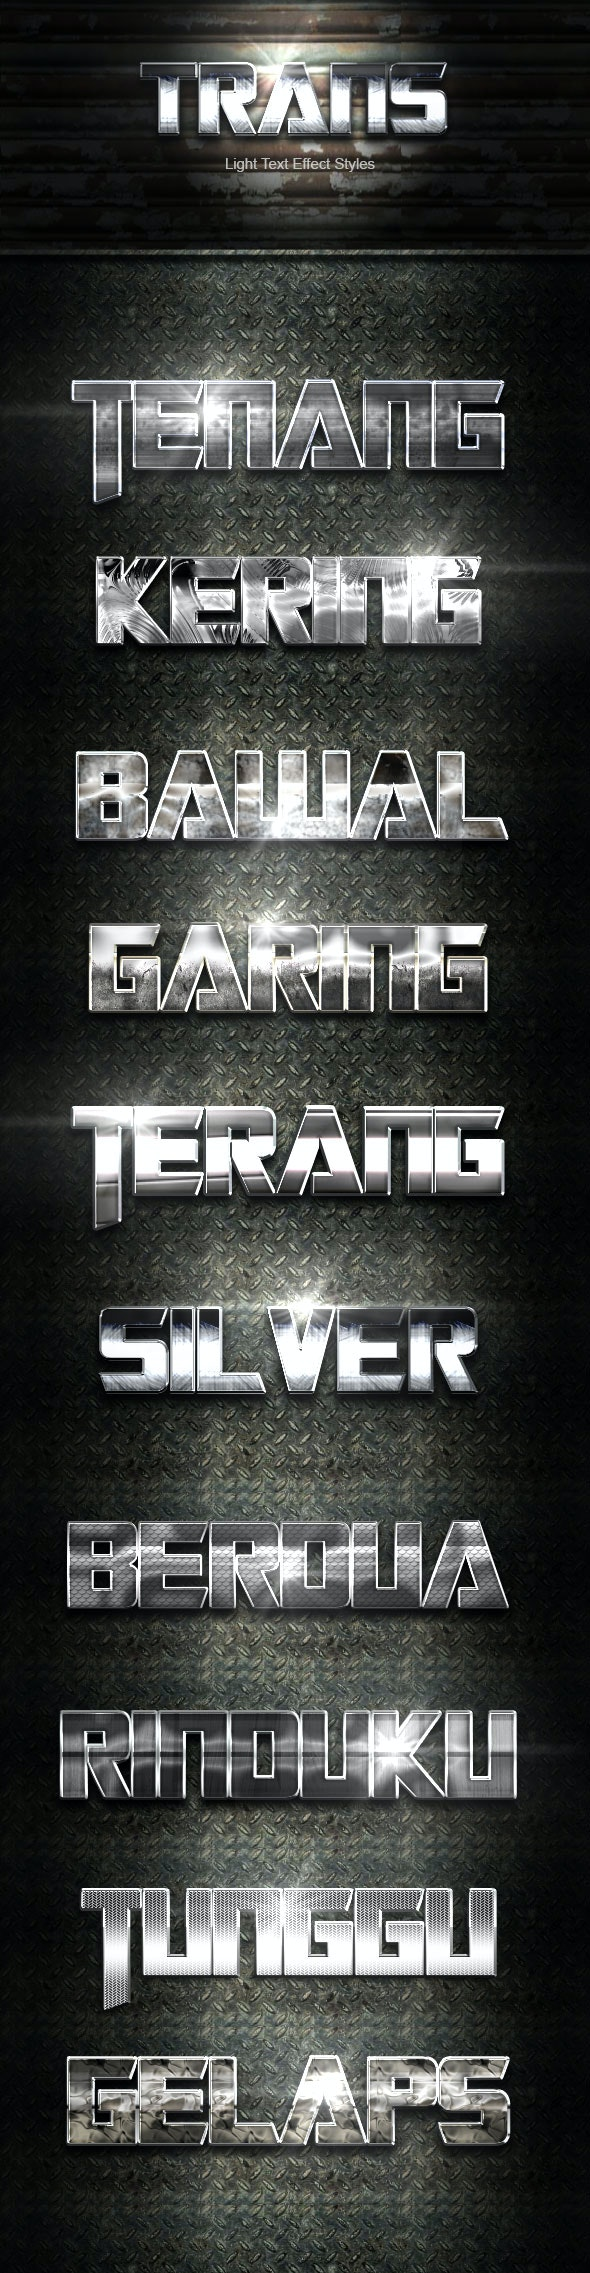 Trans Silver Text Effect V04 - Text Effects Actions